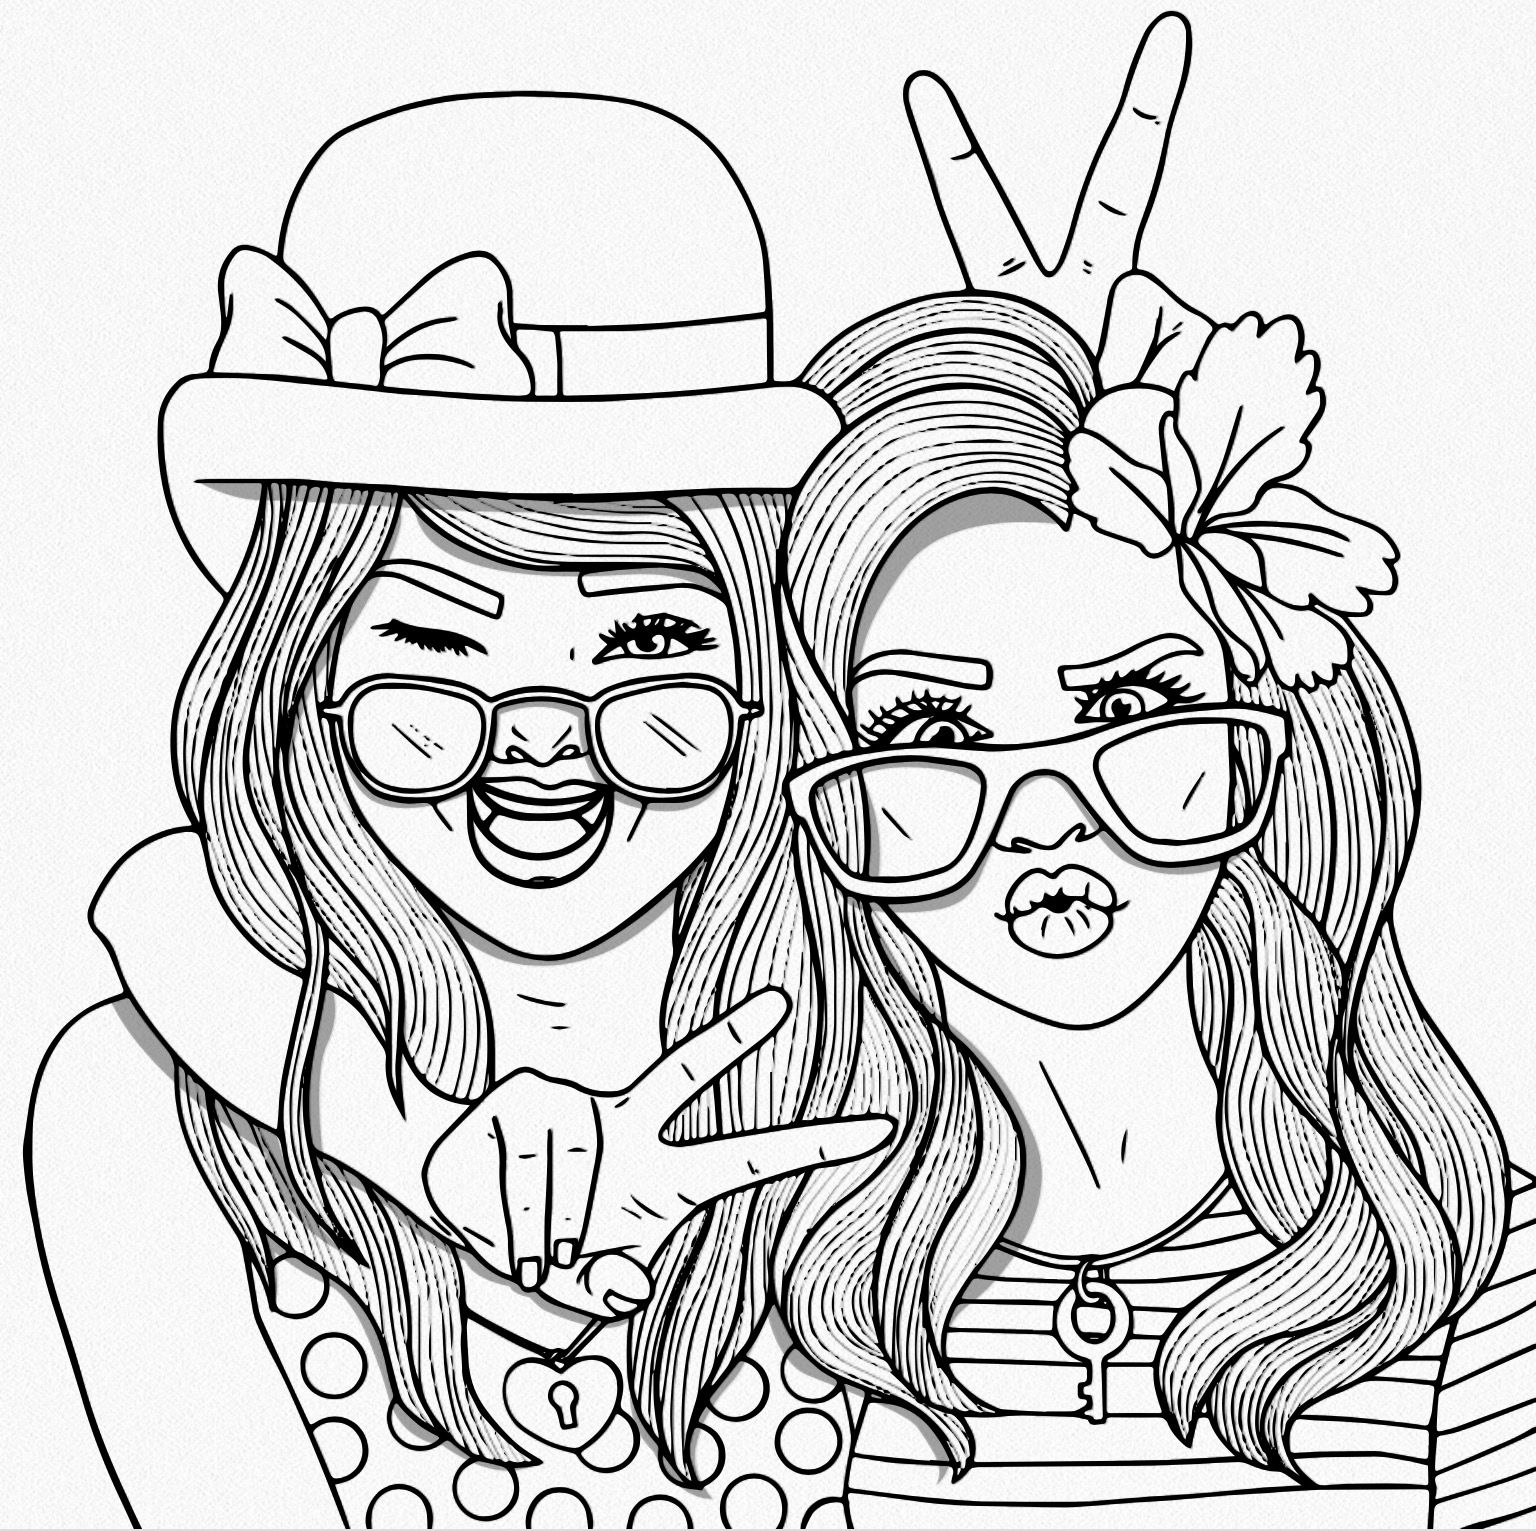 coloring pictures people people coloring pages getcoloringpagescom pictures coloring people